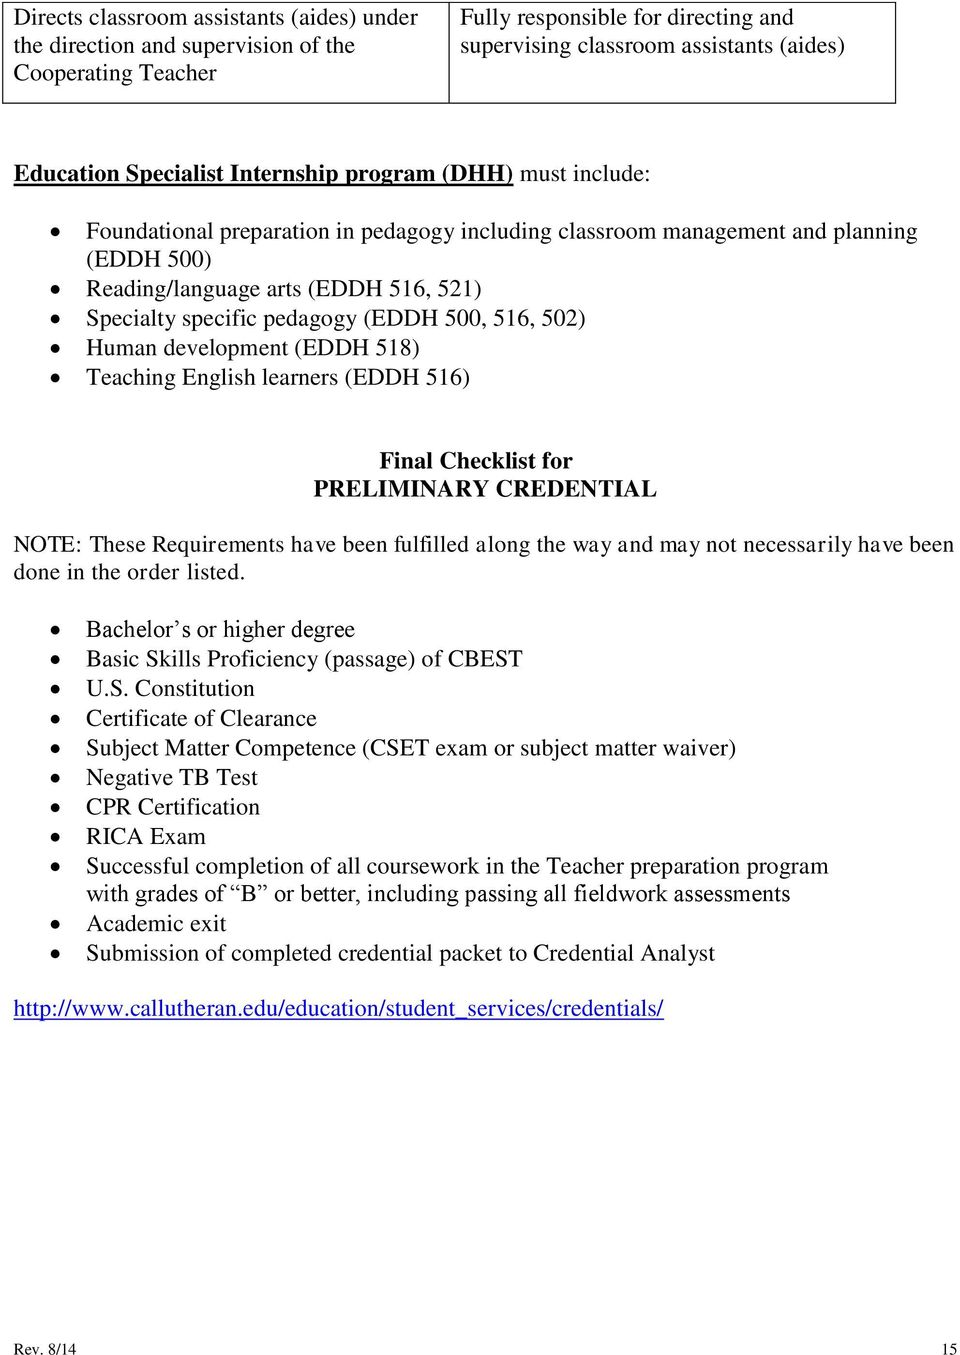 (EDDH 500, 516, 502) Human development (EDDH 518) Teaching English learners (EDDH 516) Final Checklist for PRELIMINARY CREDENTIAL NOTE: These Requirements have been fulfilled along the way and may